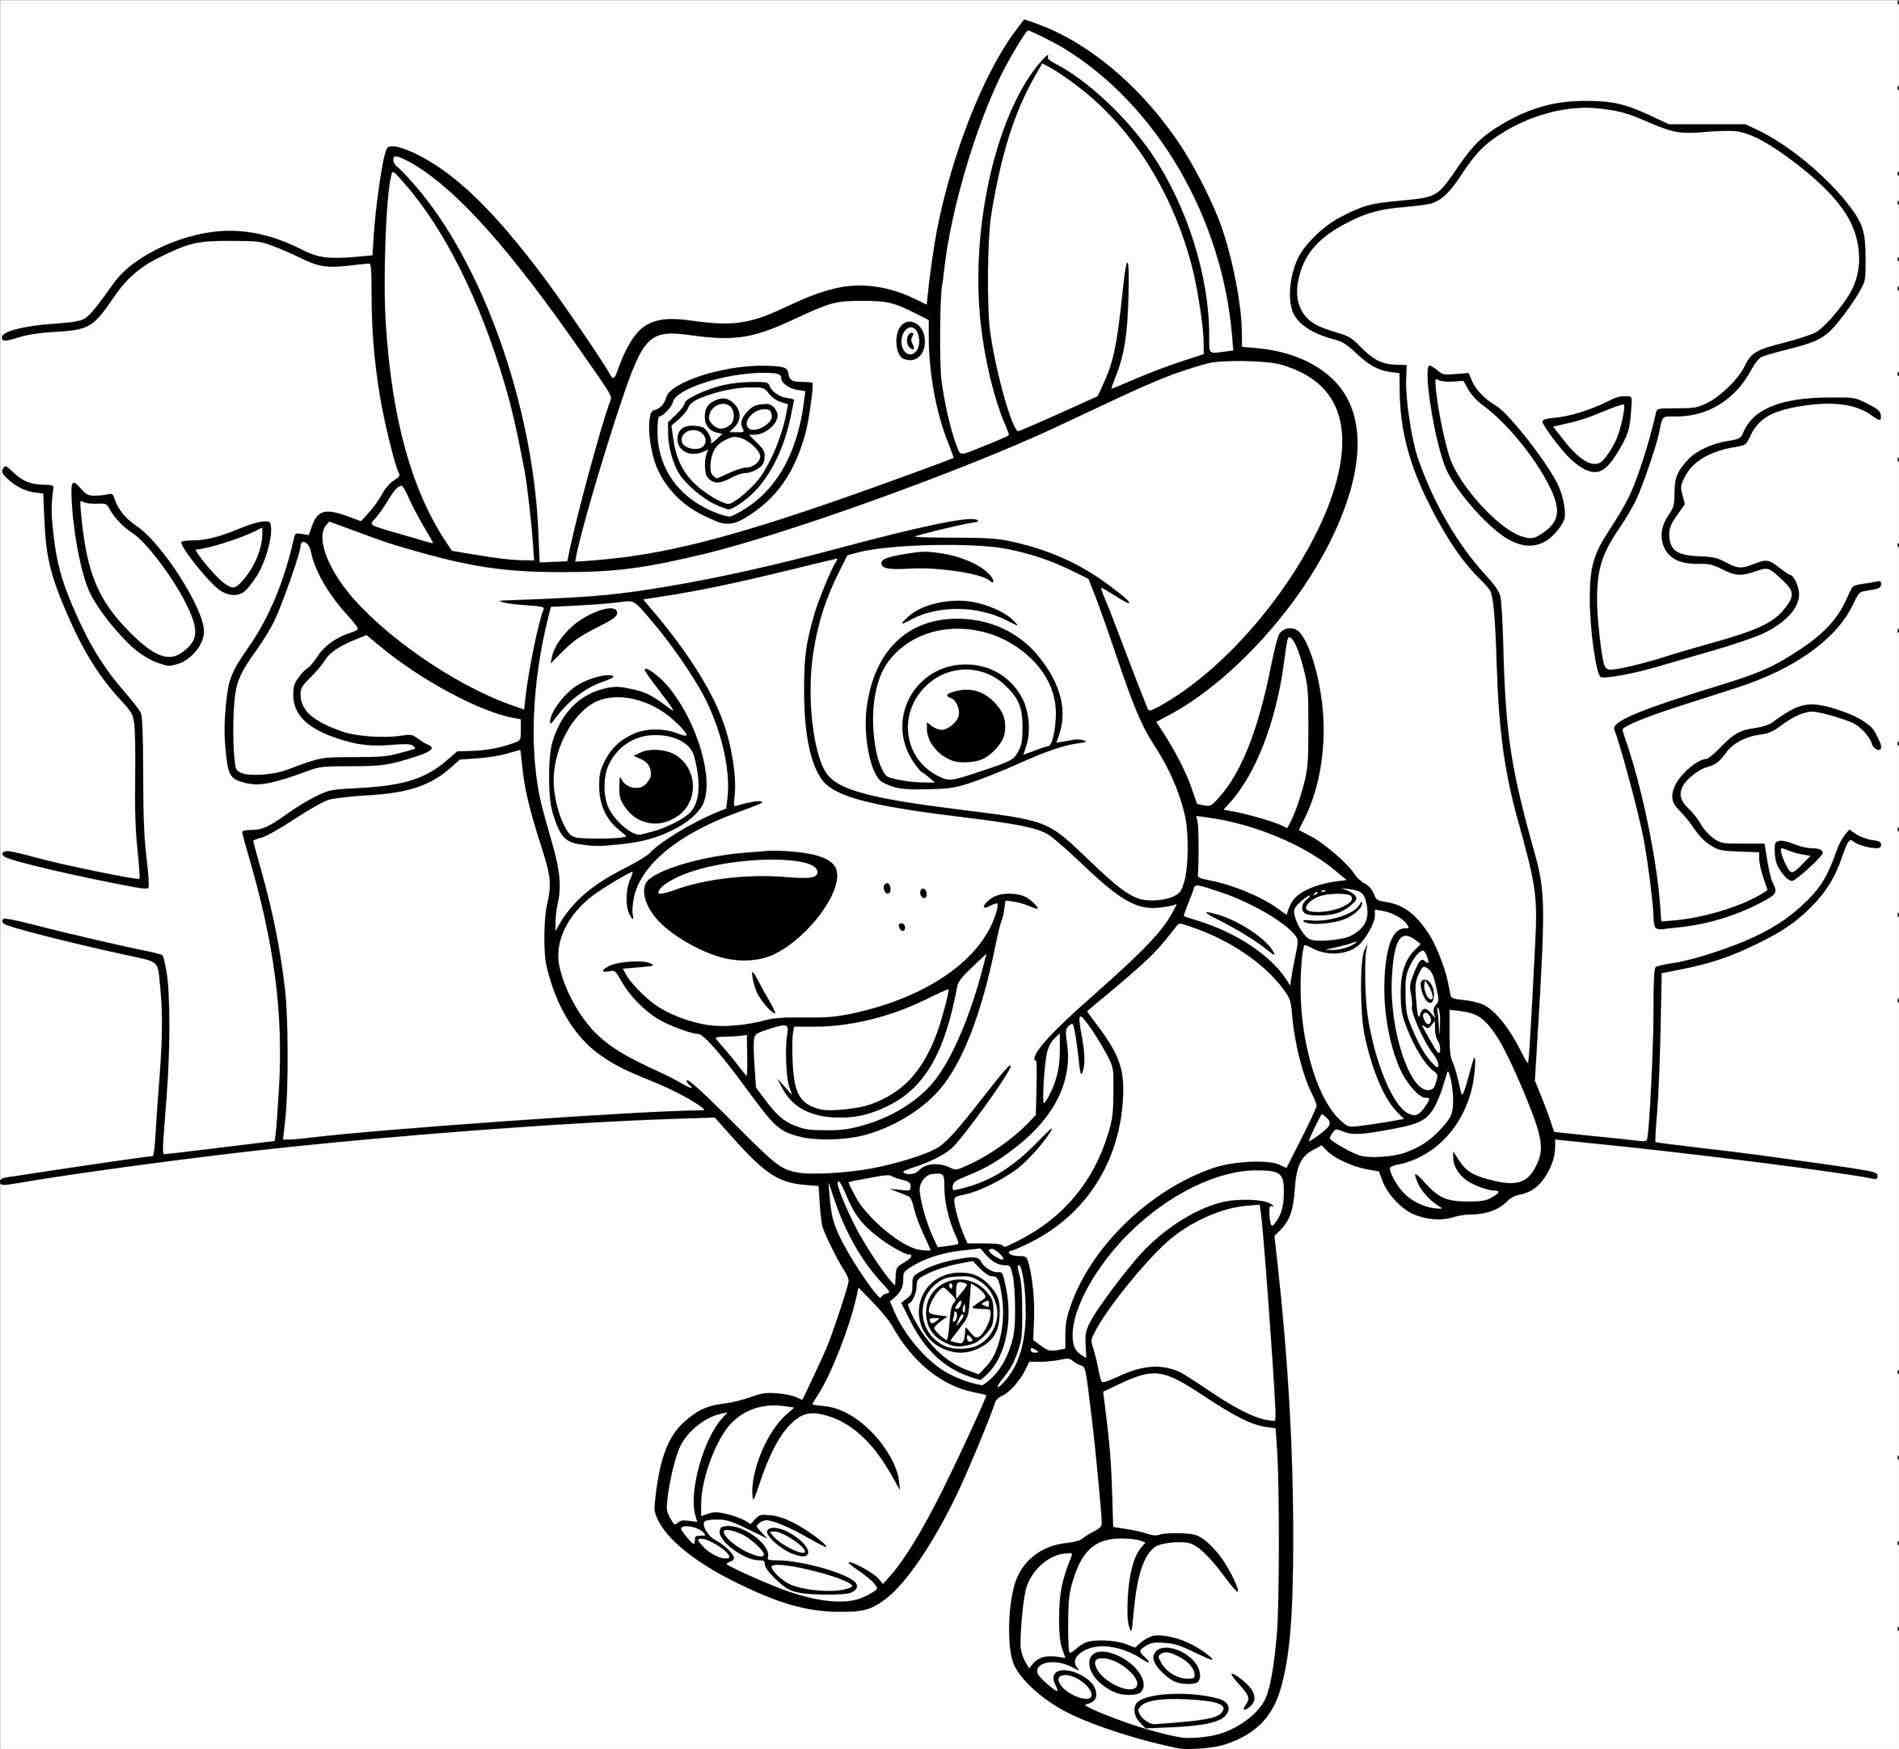 Paw Patrol Tracker Coloring Pages At Getdrawings Com Free